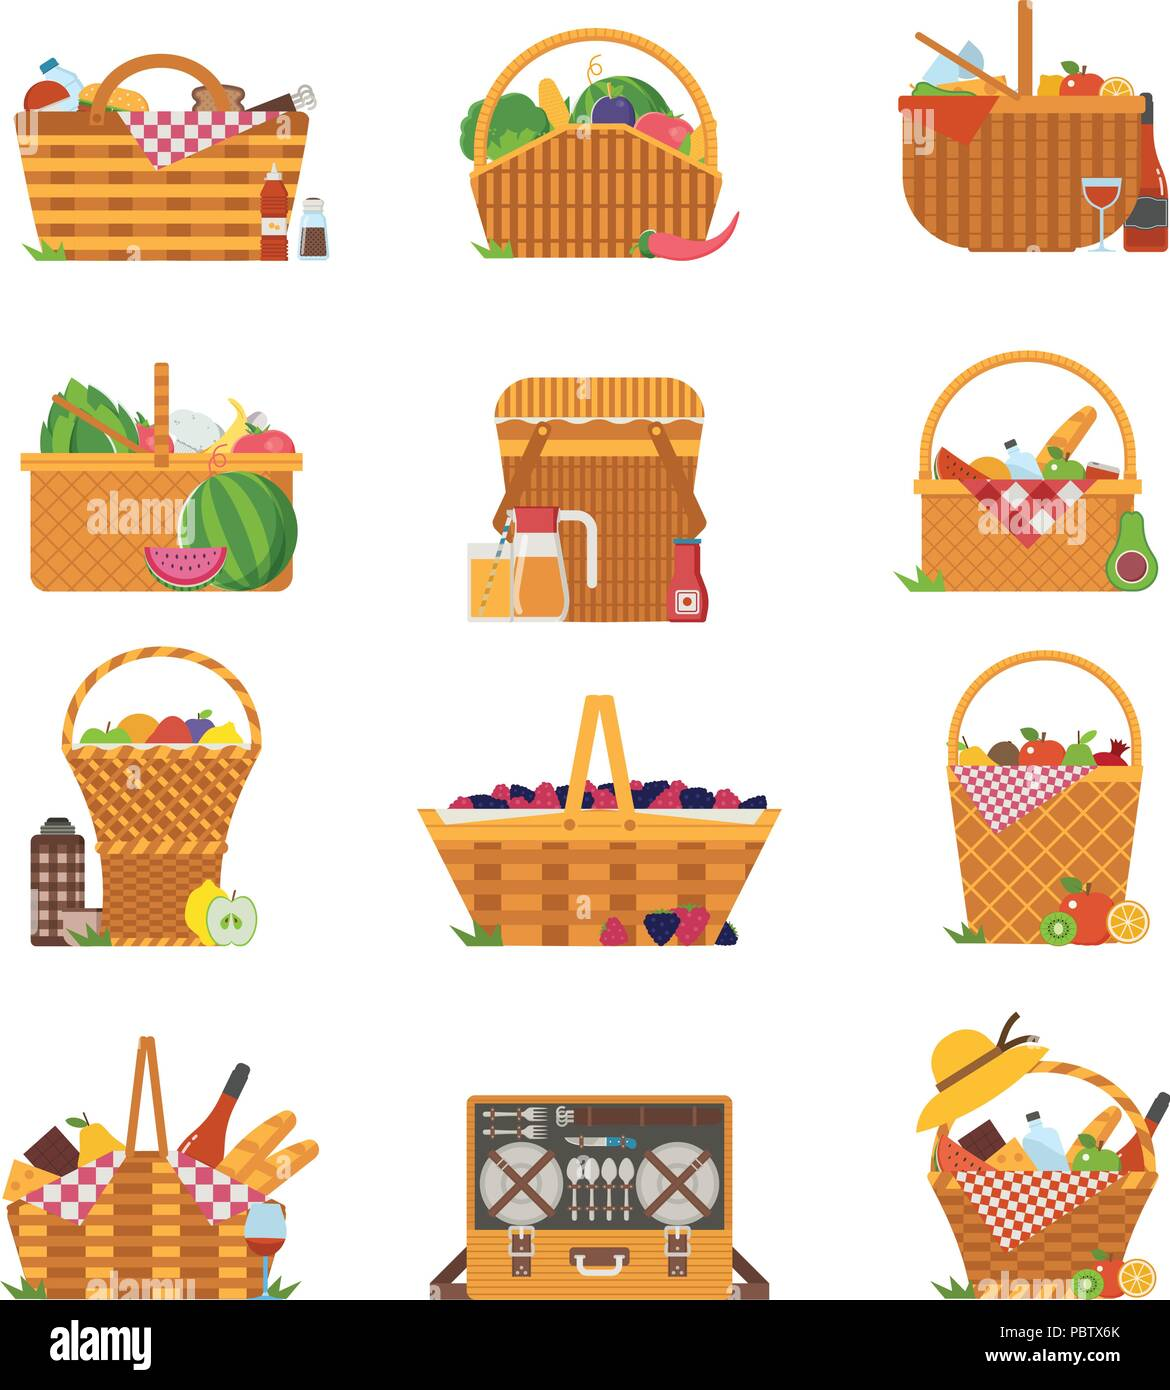 Wicker Picnic Baskets and Hampers Icons - Stock Vector